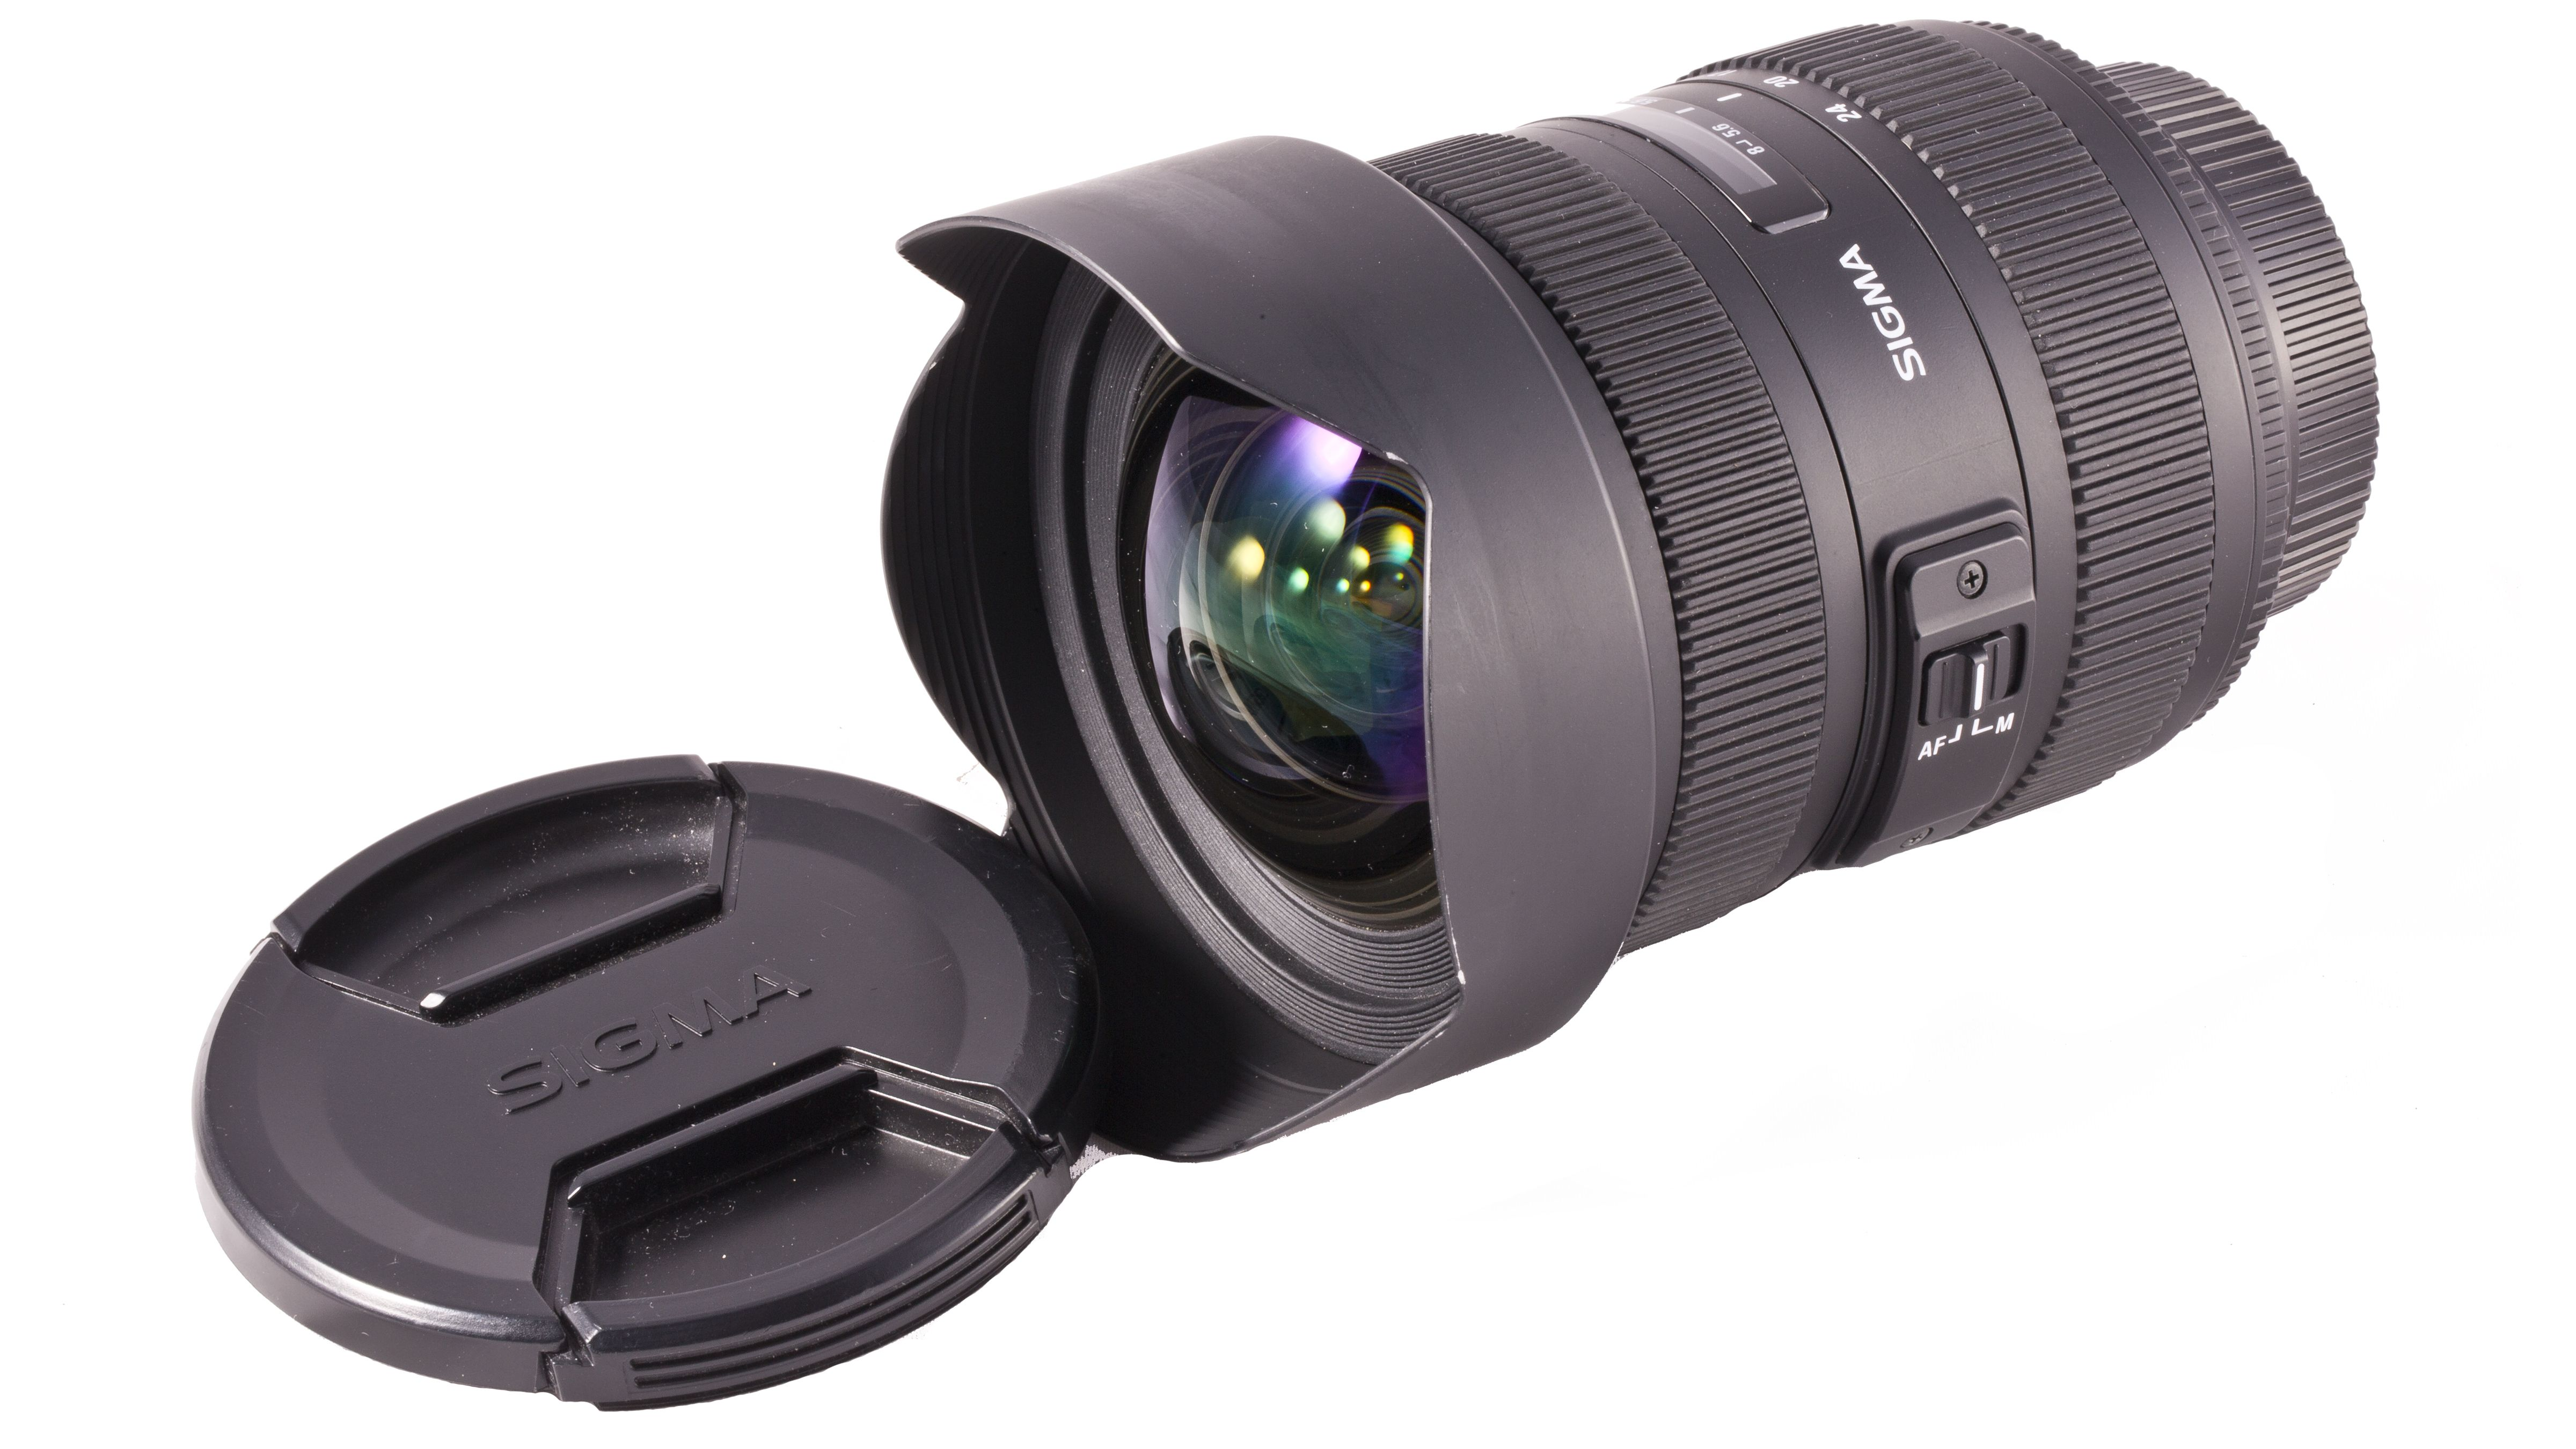 Available to hire from Lenslocker from £25.99 for a 3 day hire. This ultra wide angle zoom lens incorporates the latest optical design, superior peripheral brightness and provides sharp and high contrast images even at the maximum apertures.